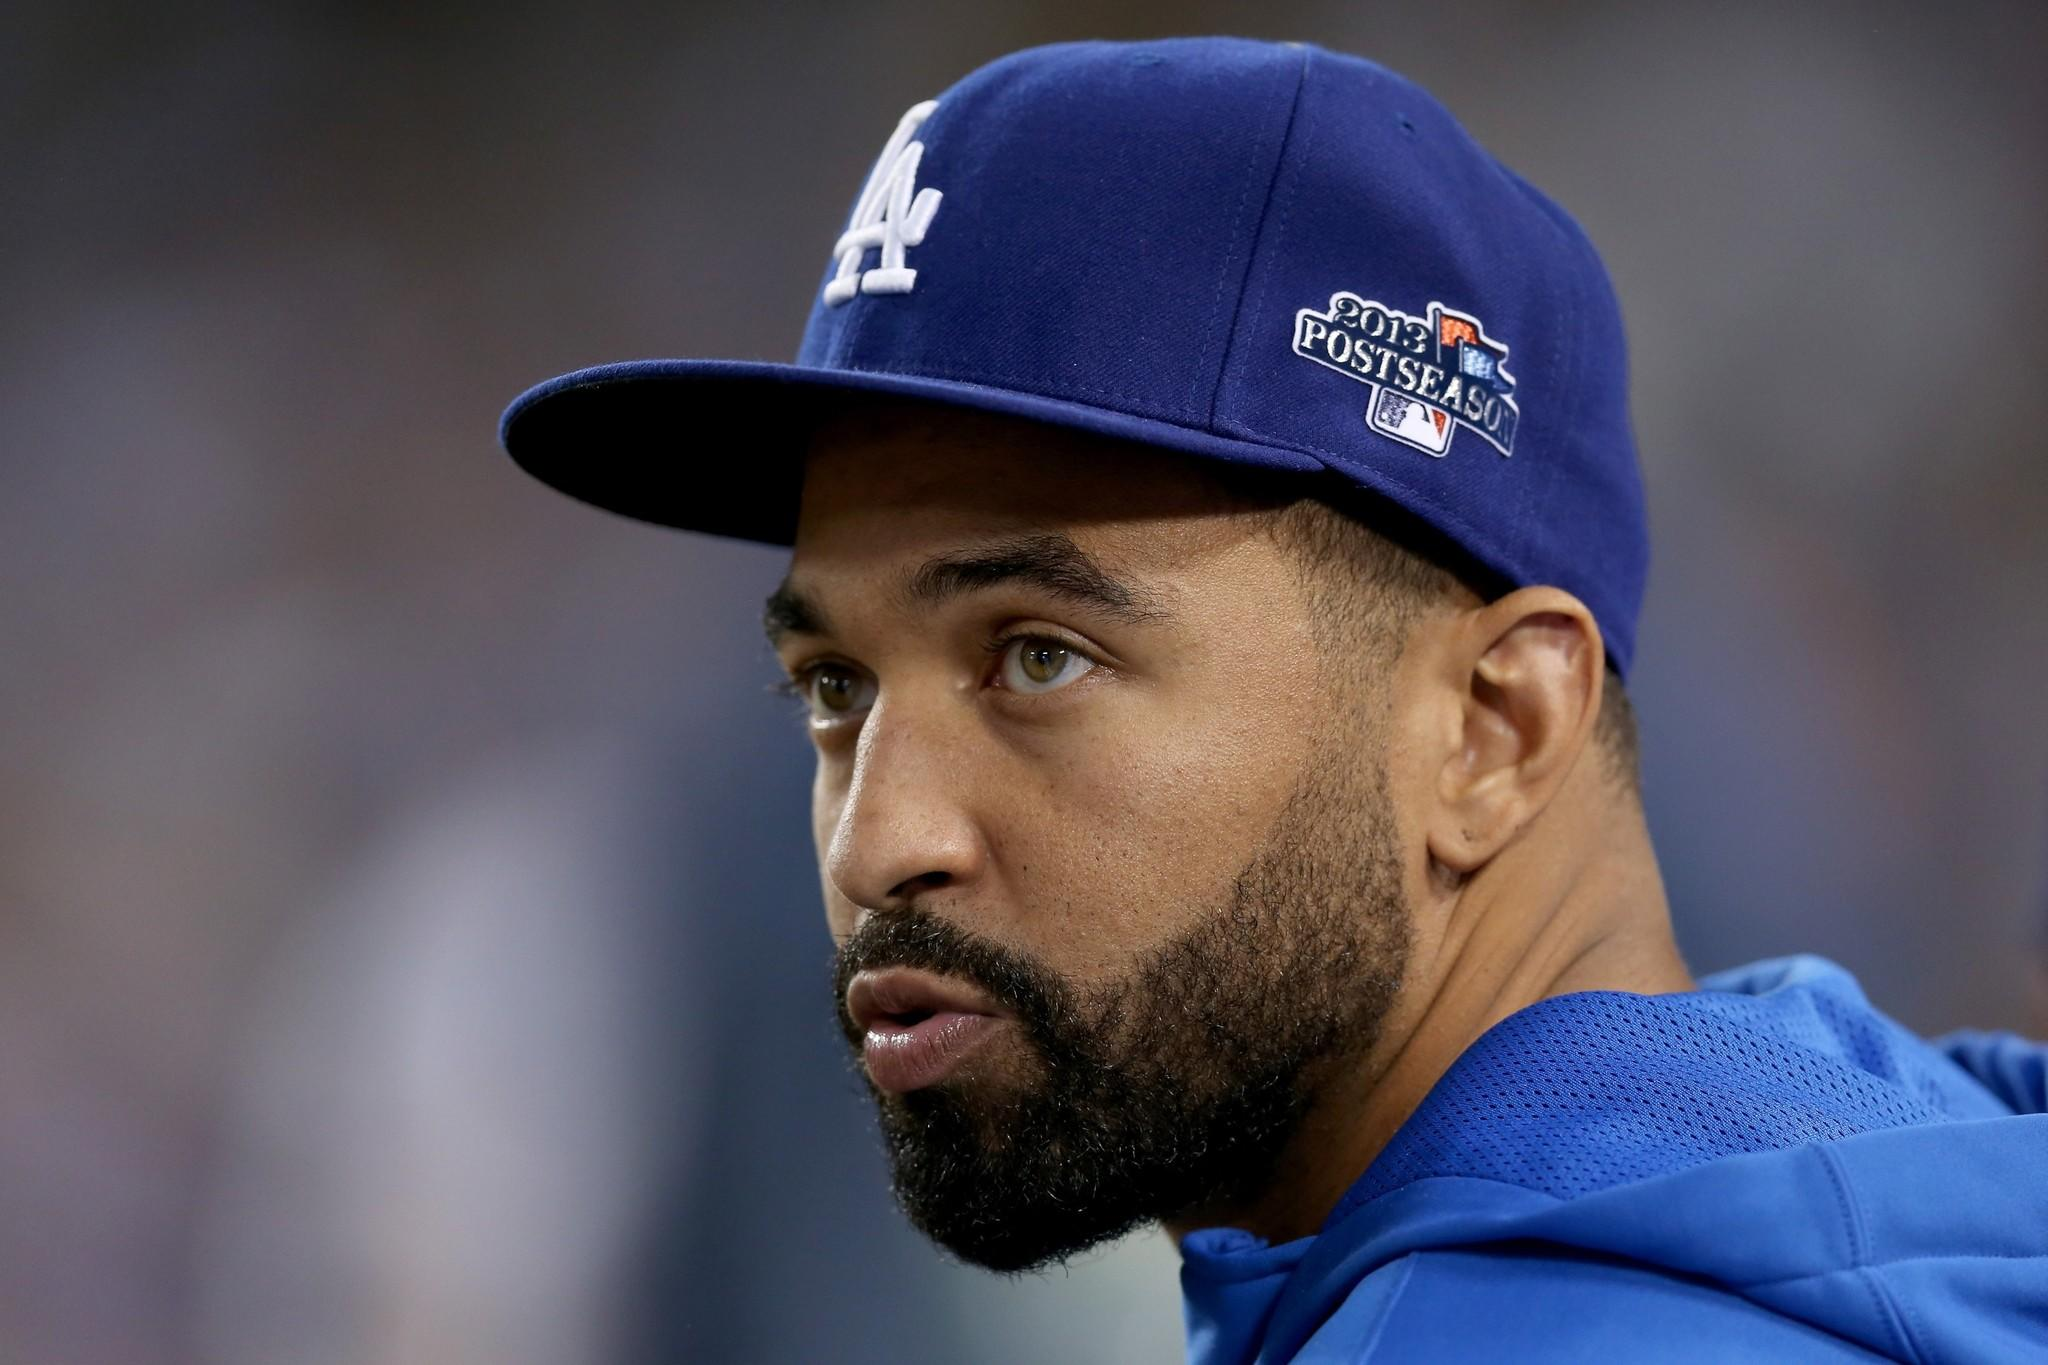 Matt Kemp looks on while the Dodgers take on the St. Louis Cardinals in Game 3 of the National League Championship Series at Dodger Stadium.